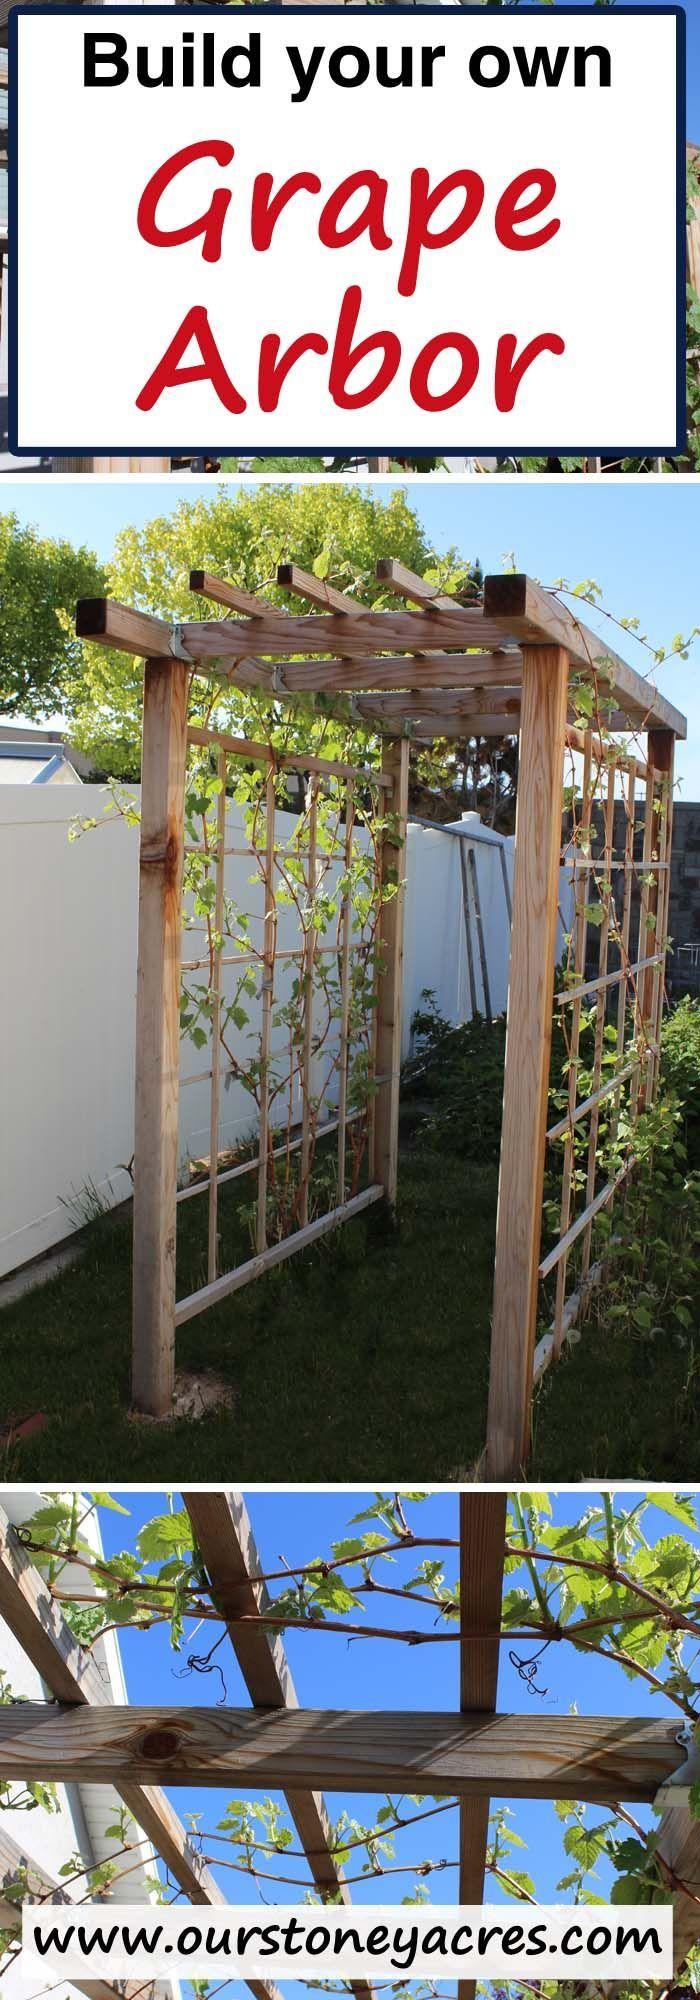 Building a Grape Arbor is a DIY project you can tackle yourself. Plan on  some